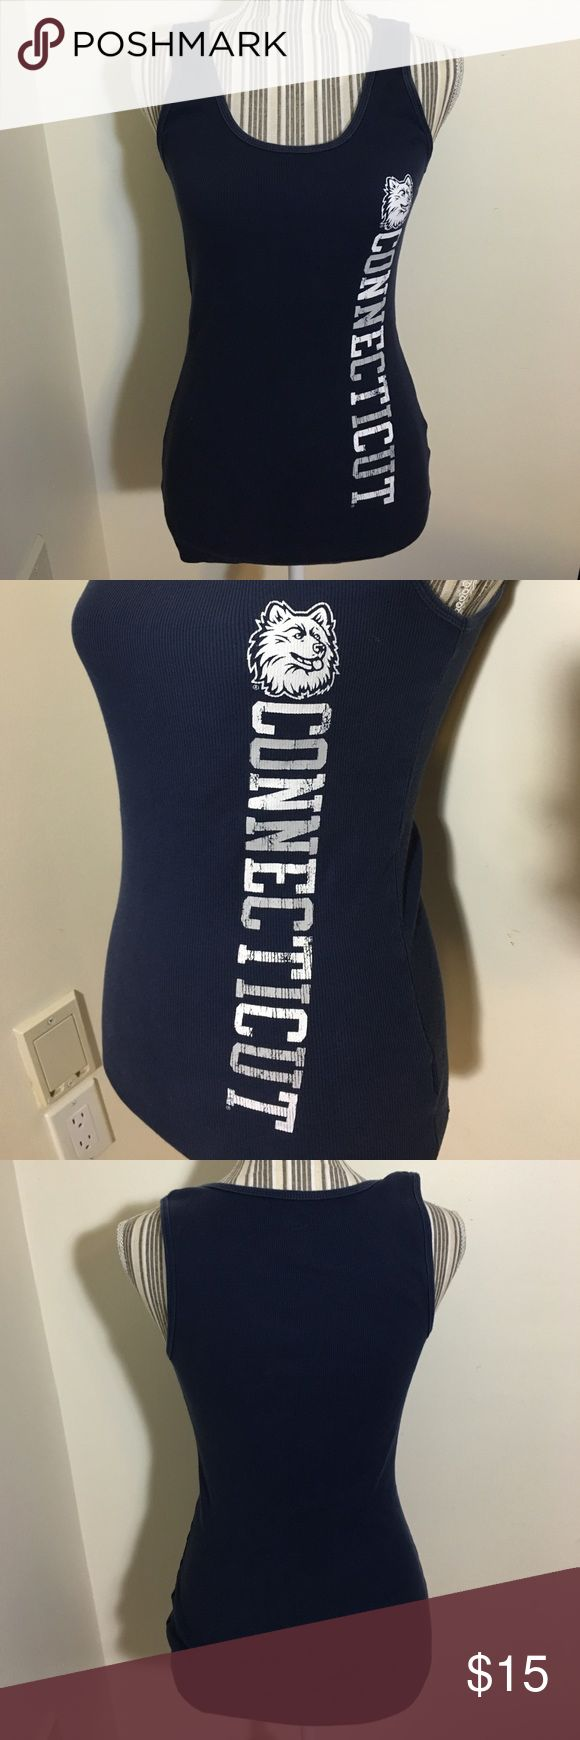 Fitted Navy Blue UCONN Huskies Connecticut Tank This tank top is fitted but stretchy. It's size XL and true to size, but also looks good on smaller sizes because of its fit. It was worn twice and just shows minor signs of wear but it's in excellent condition! The letters look cracked because that's how the style came. Super cute and perfect for showing your support for the University of Connecticut Soffe Tops Tank Tops